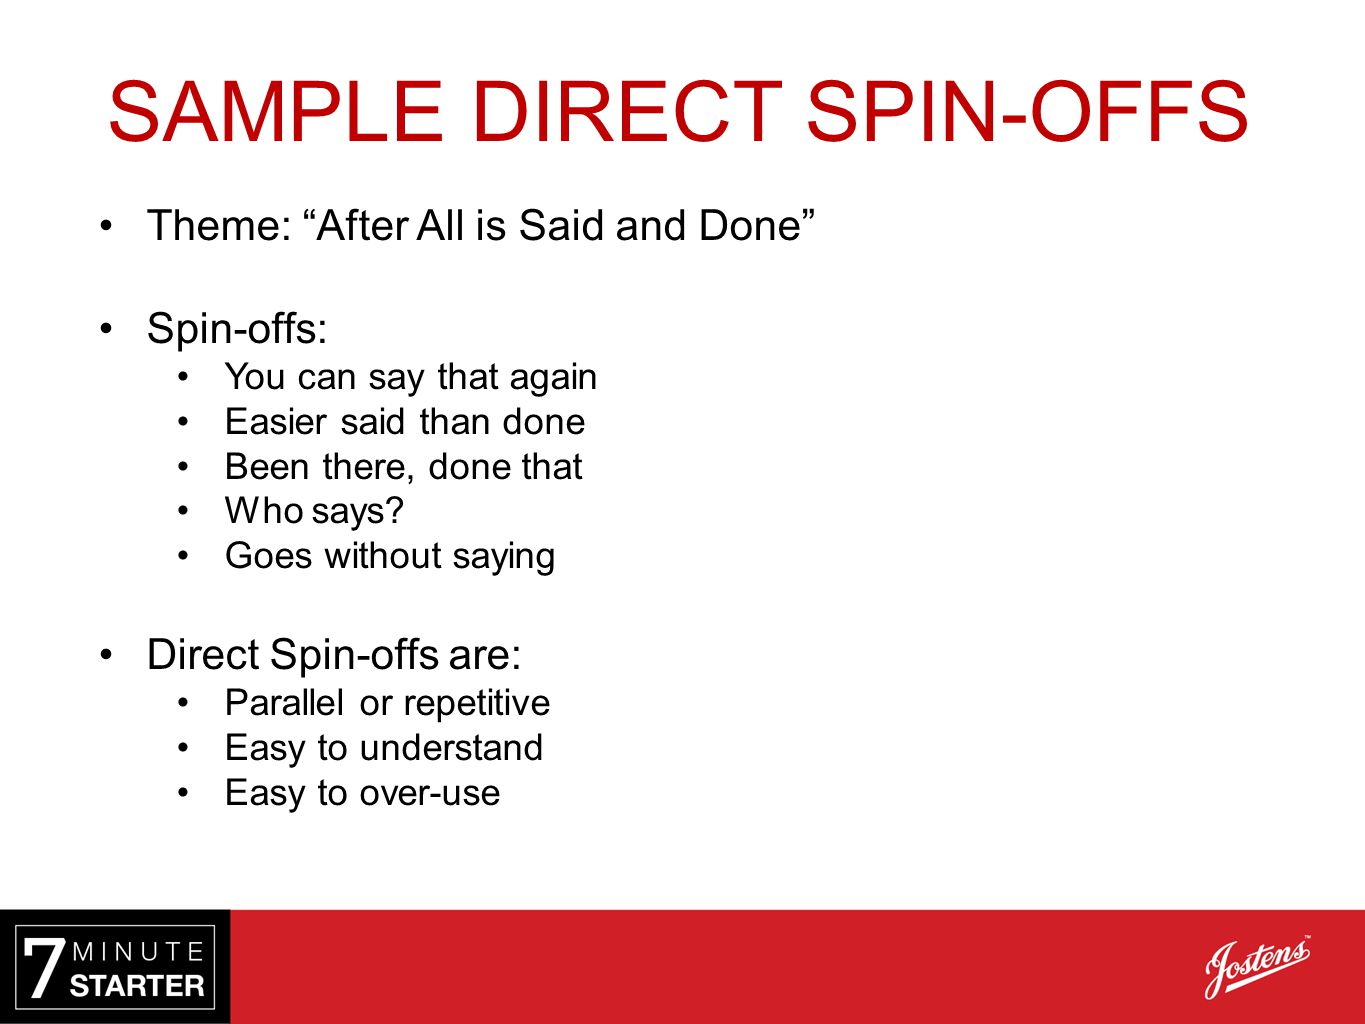 SAMPLE DIRECT SPIN-OFFS